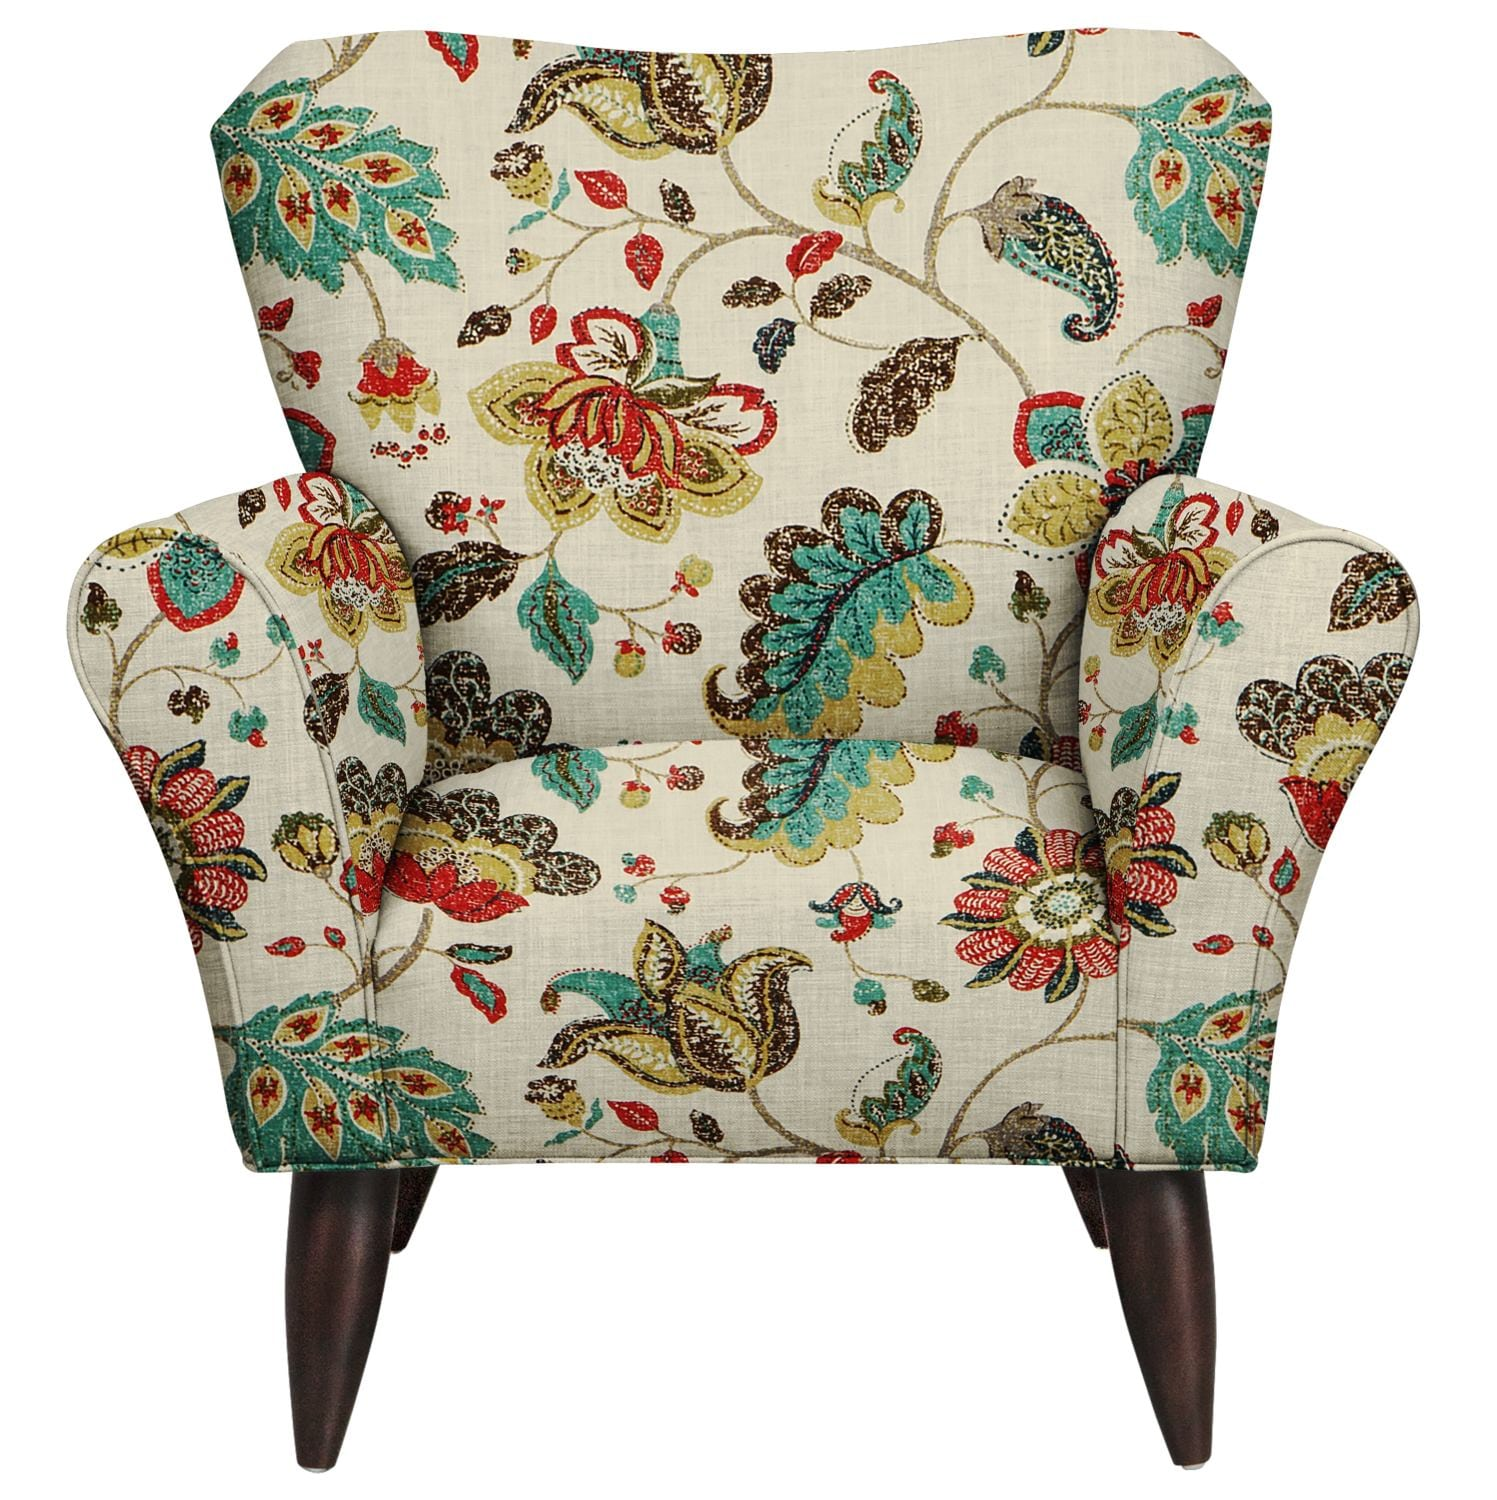 Living Room Furniture   Jessie Chair W/ Spring Mix Poppy Fabric